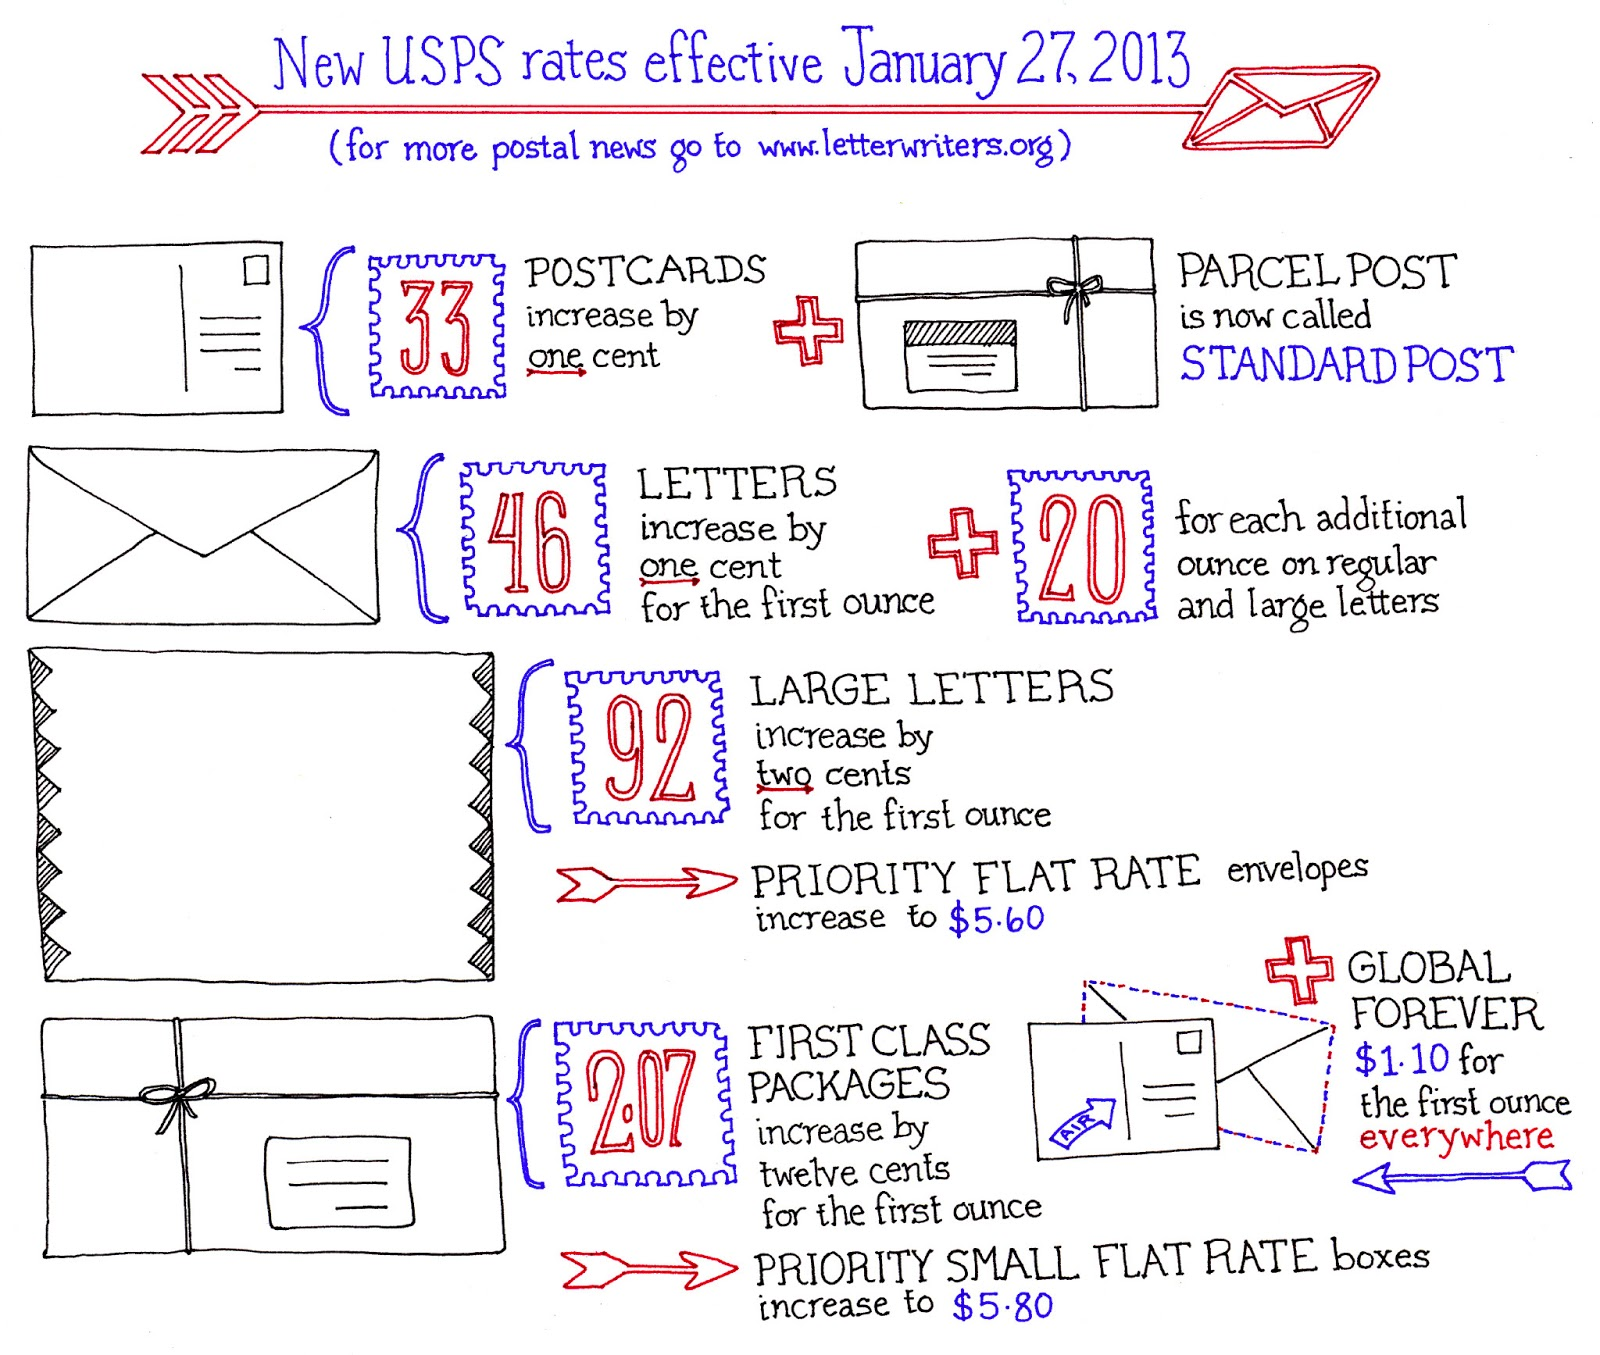 ... from the Letter Writers Alliance, explaining the change in USPS rates